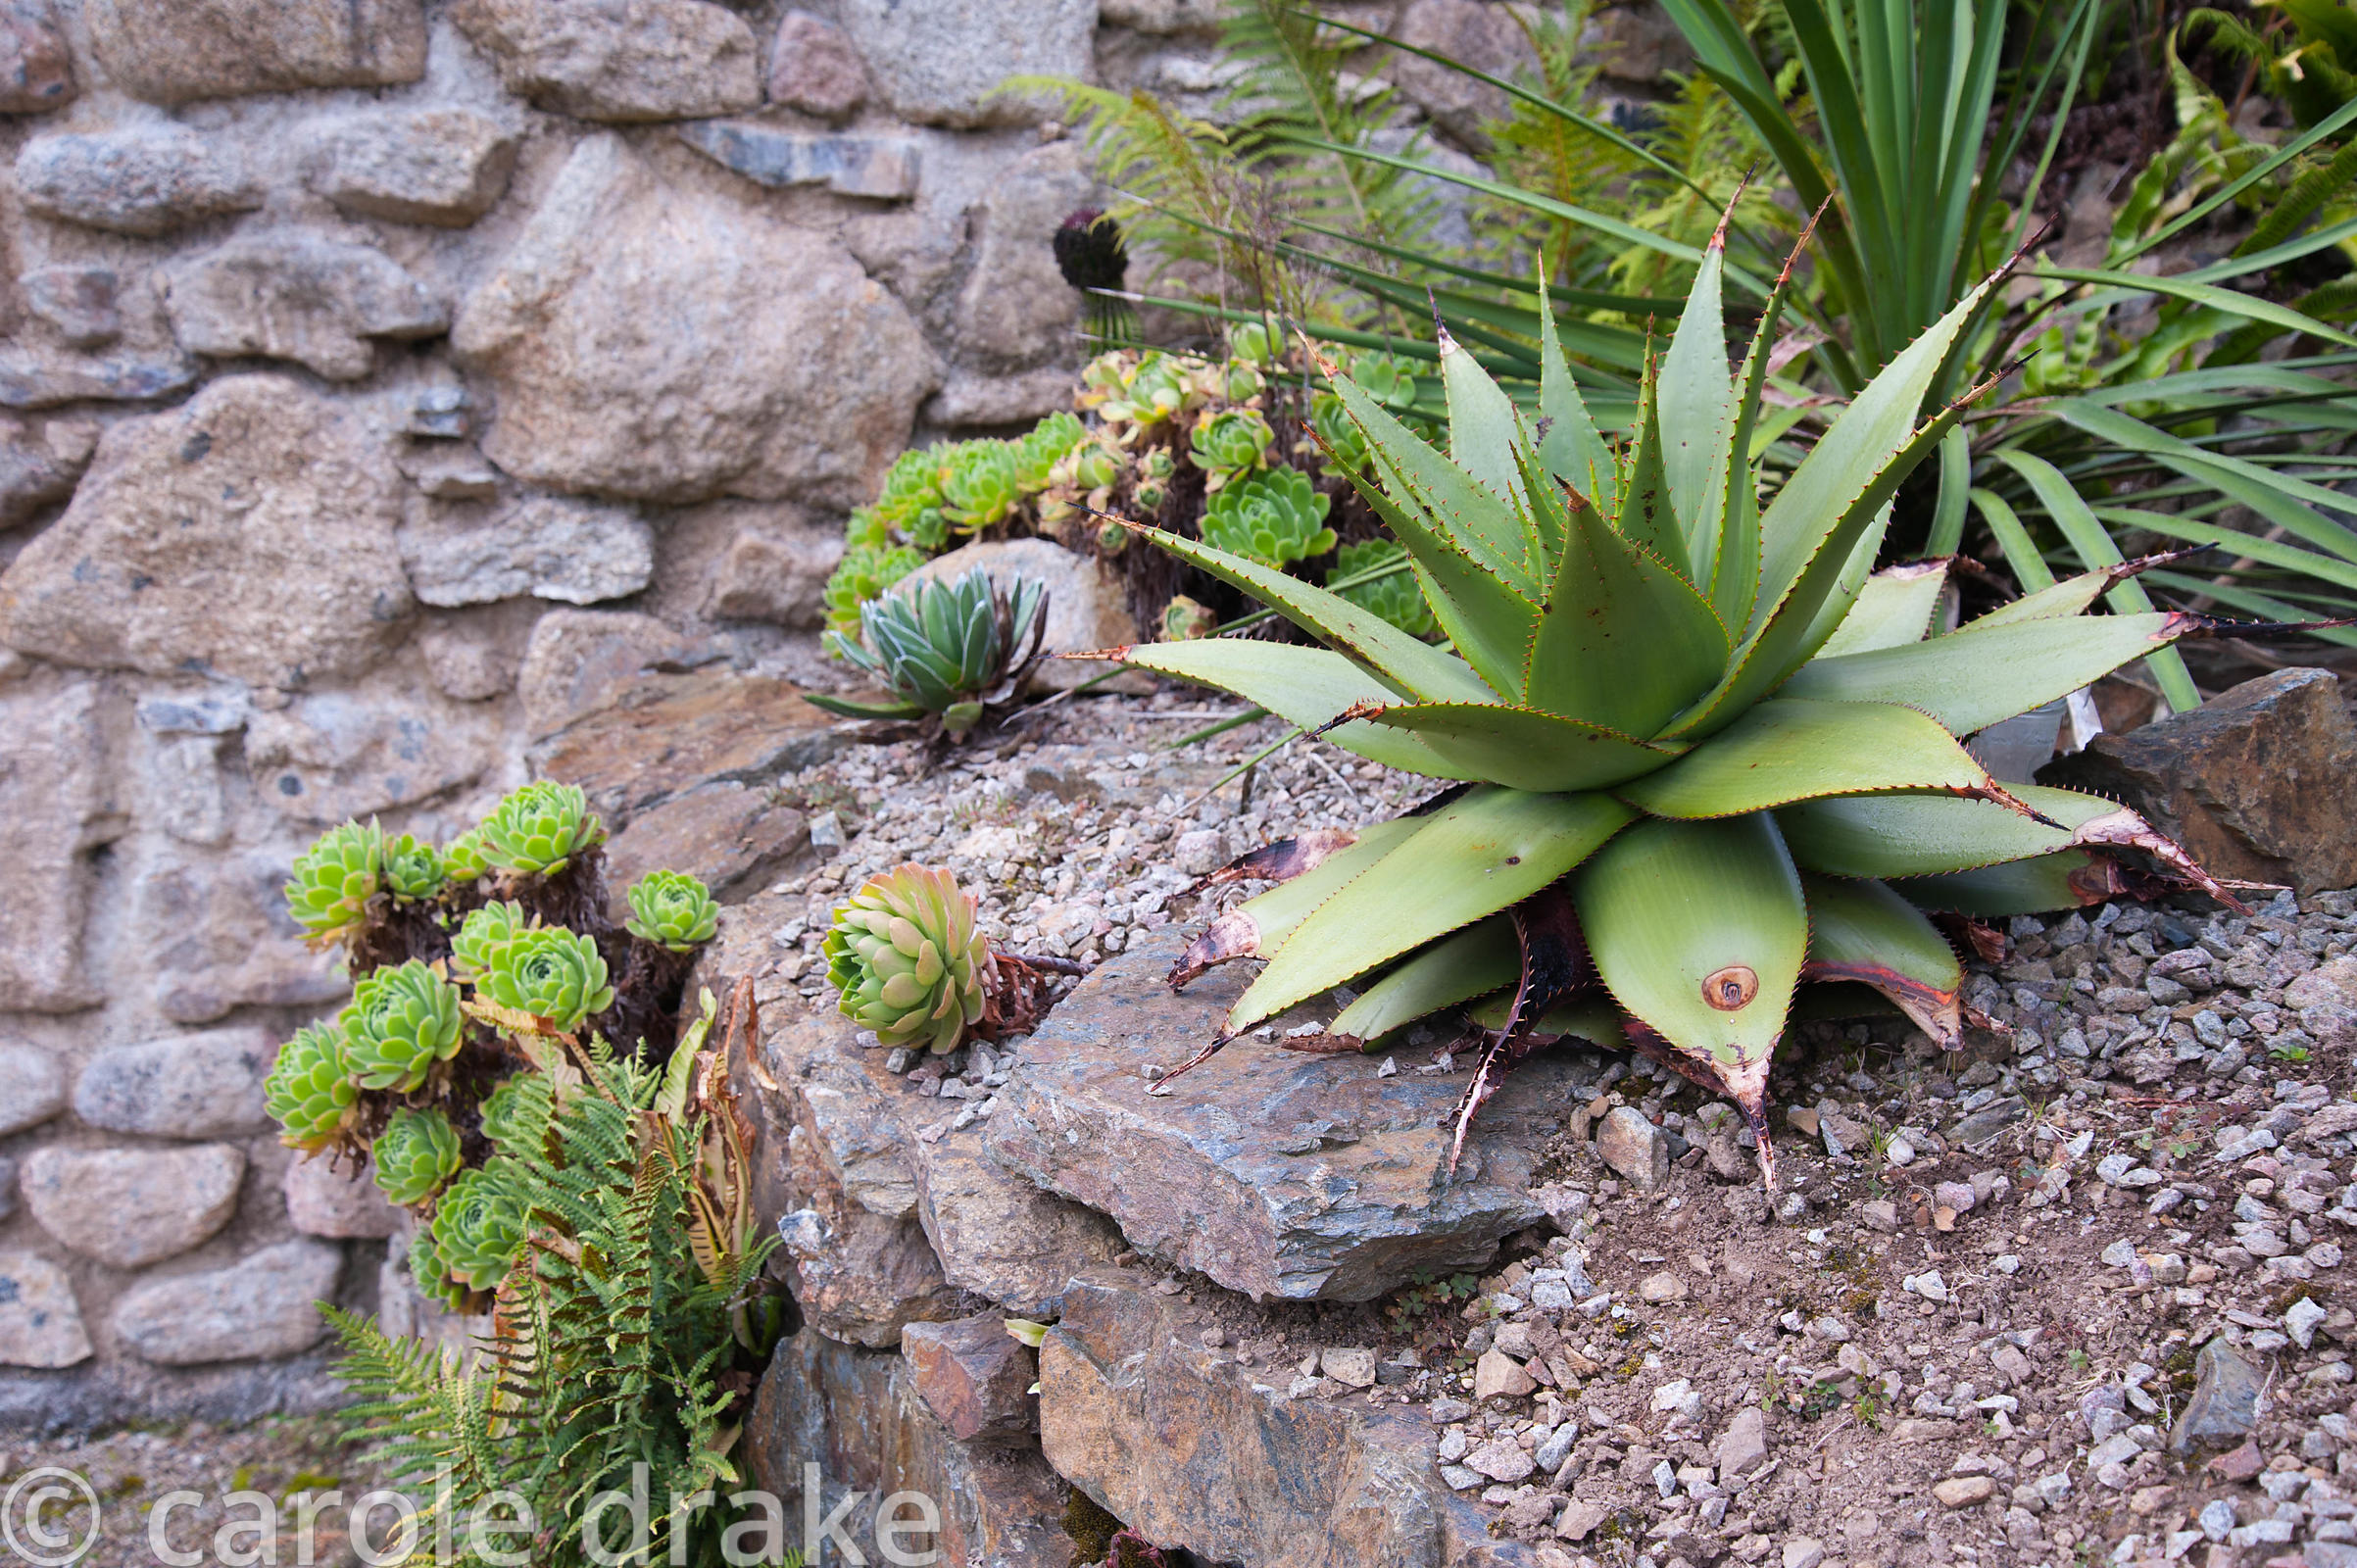 Succulents growing in gritty, well drained conditions on top of a stone wall